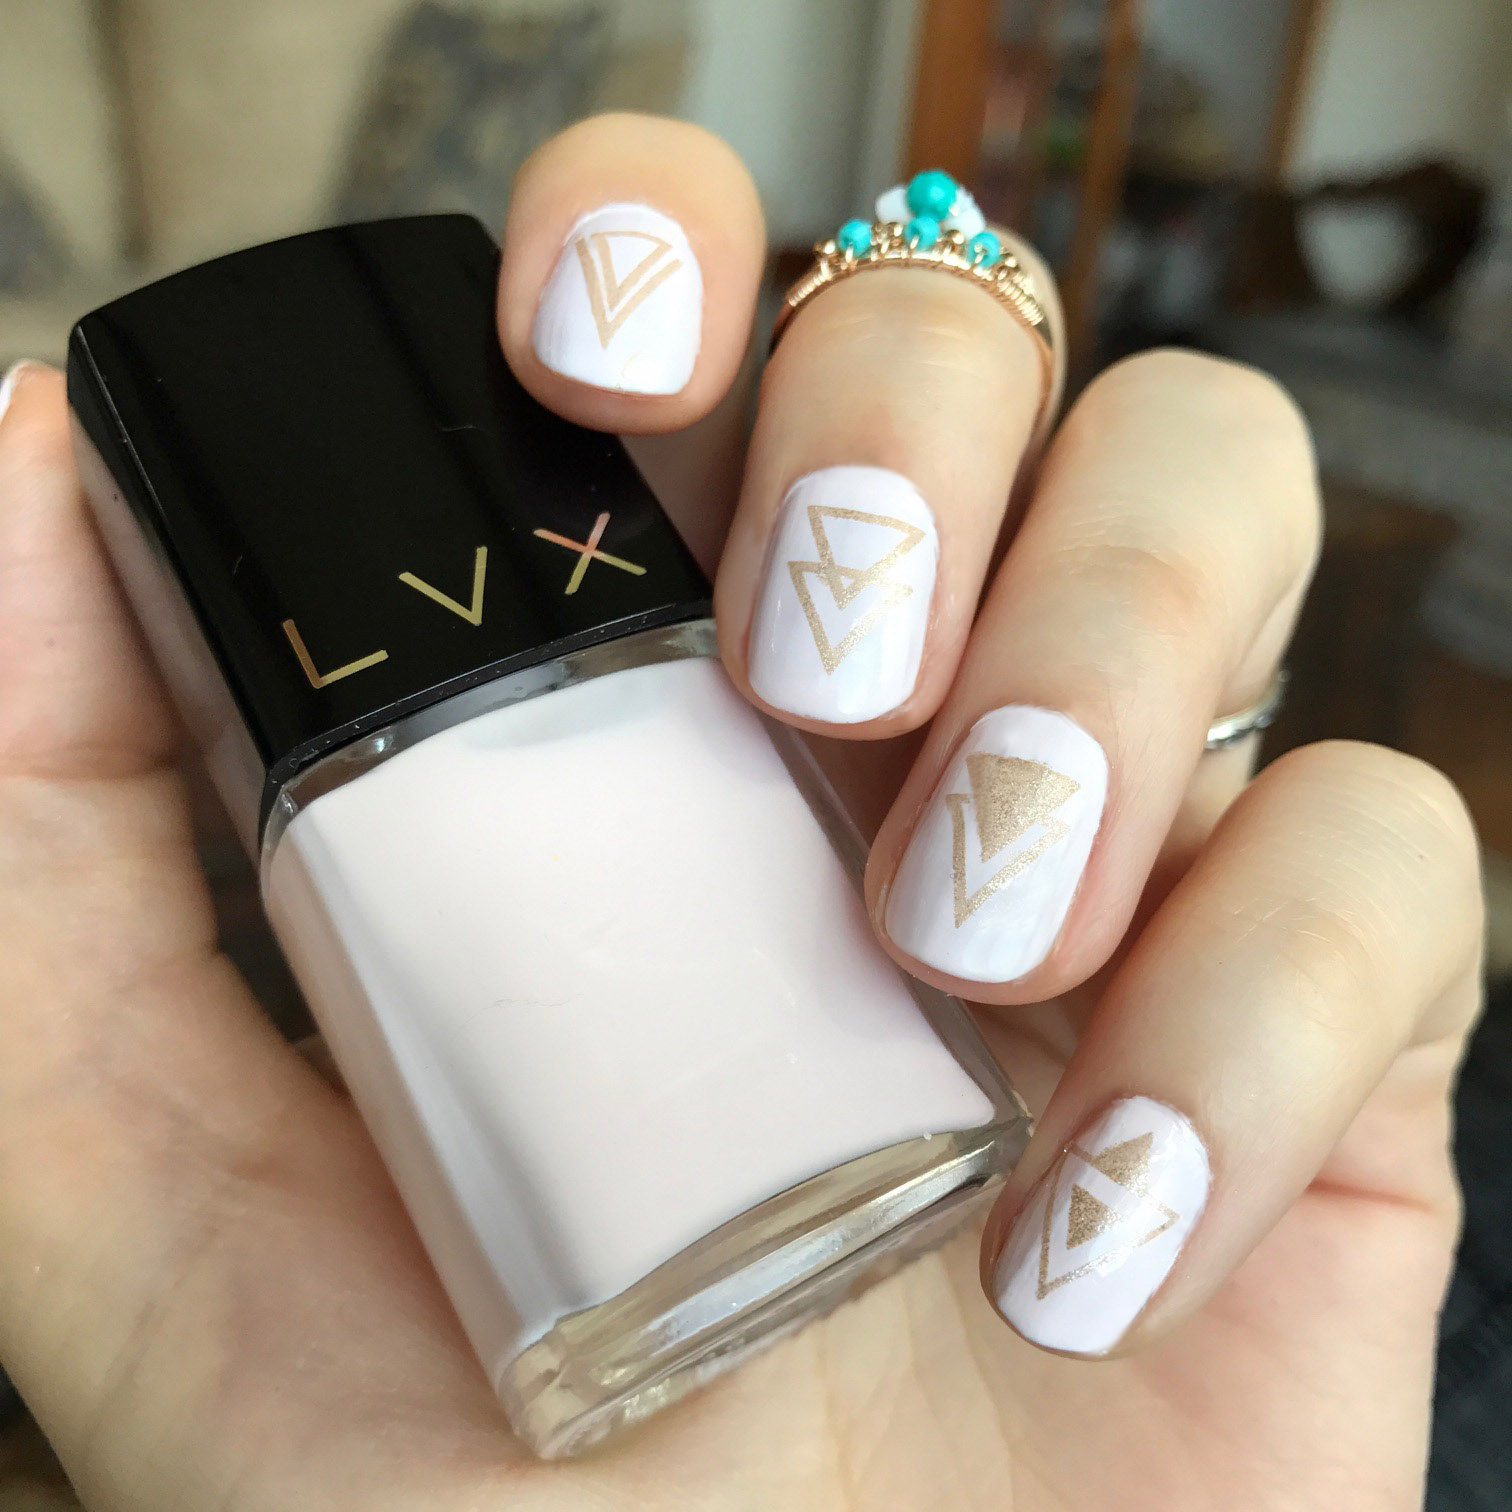 LVX Coquillage nail polish